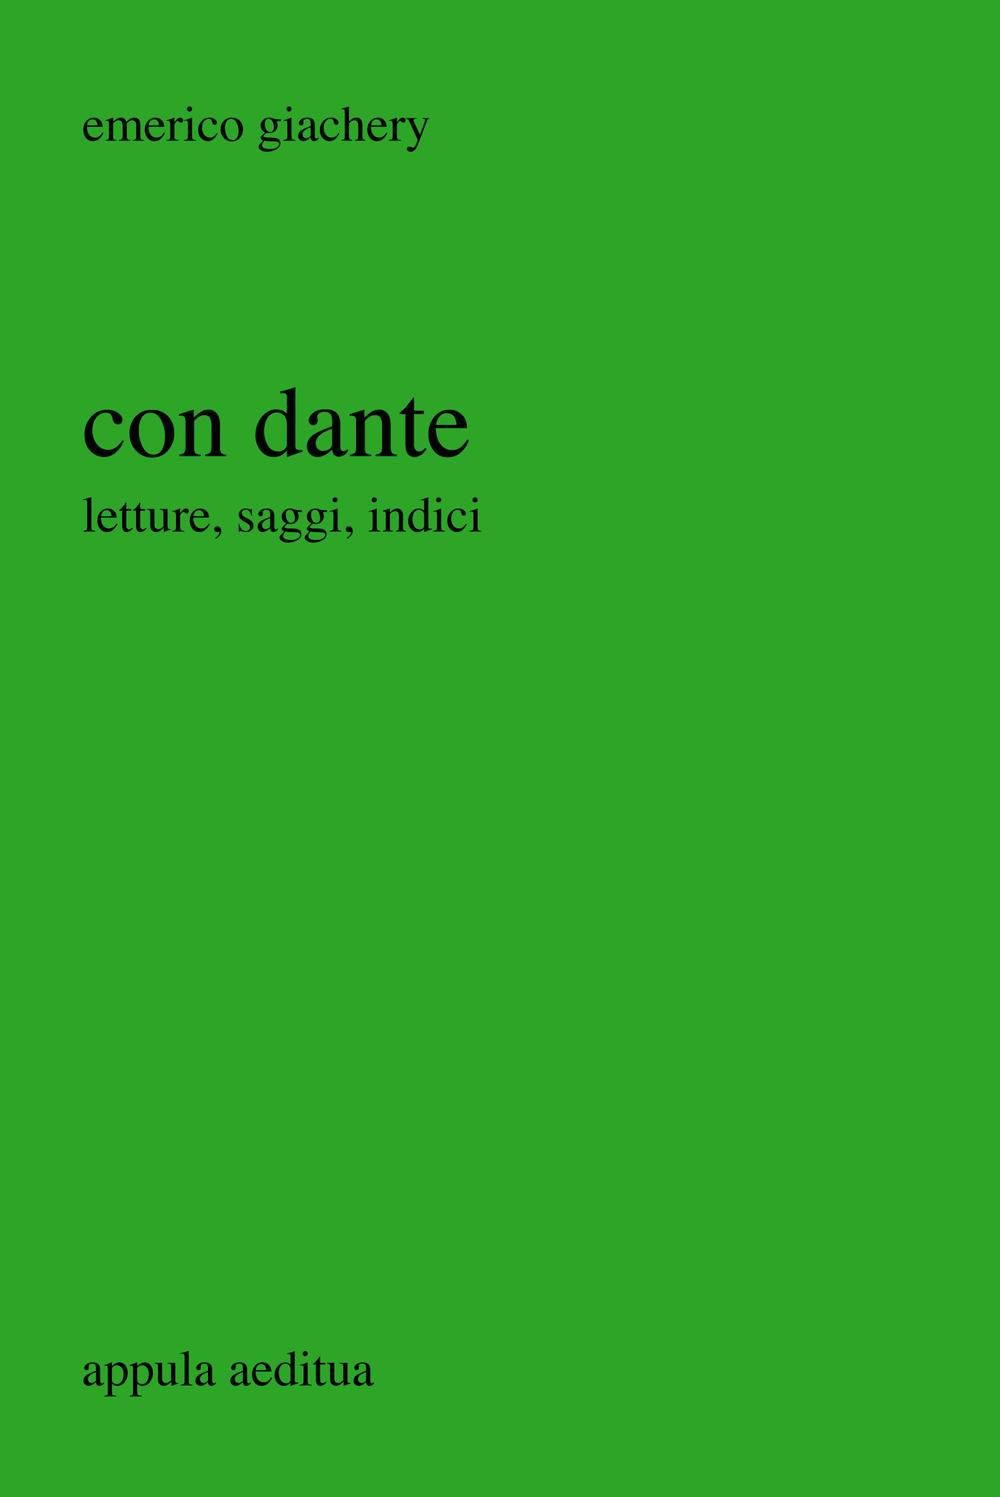 con dante Giachery cover